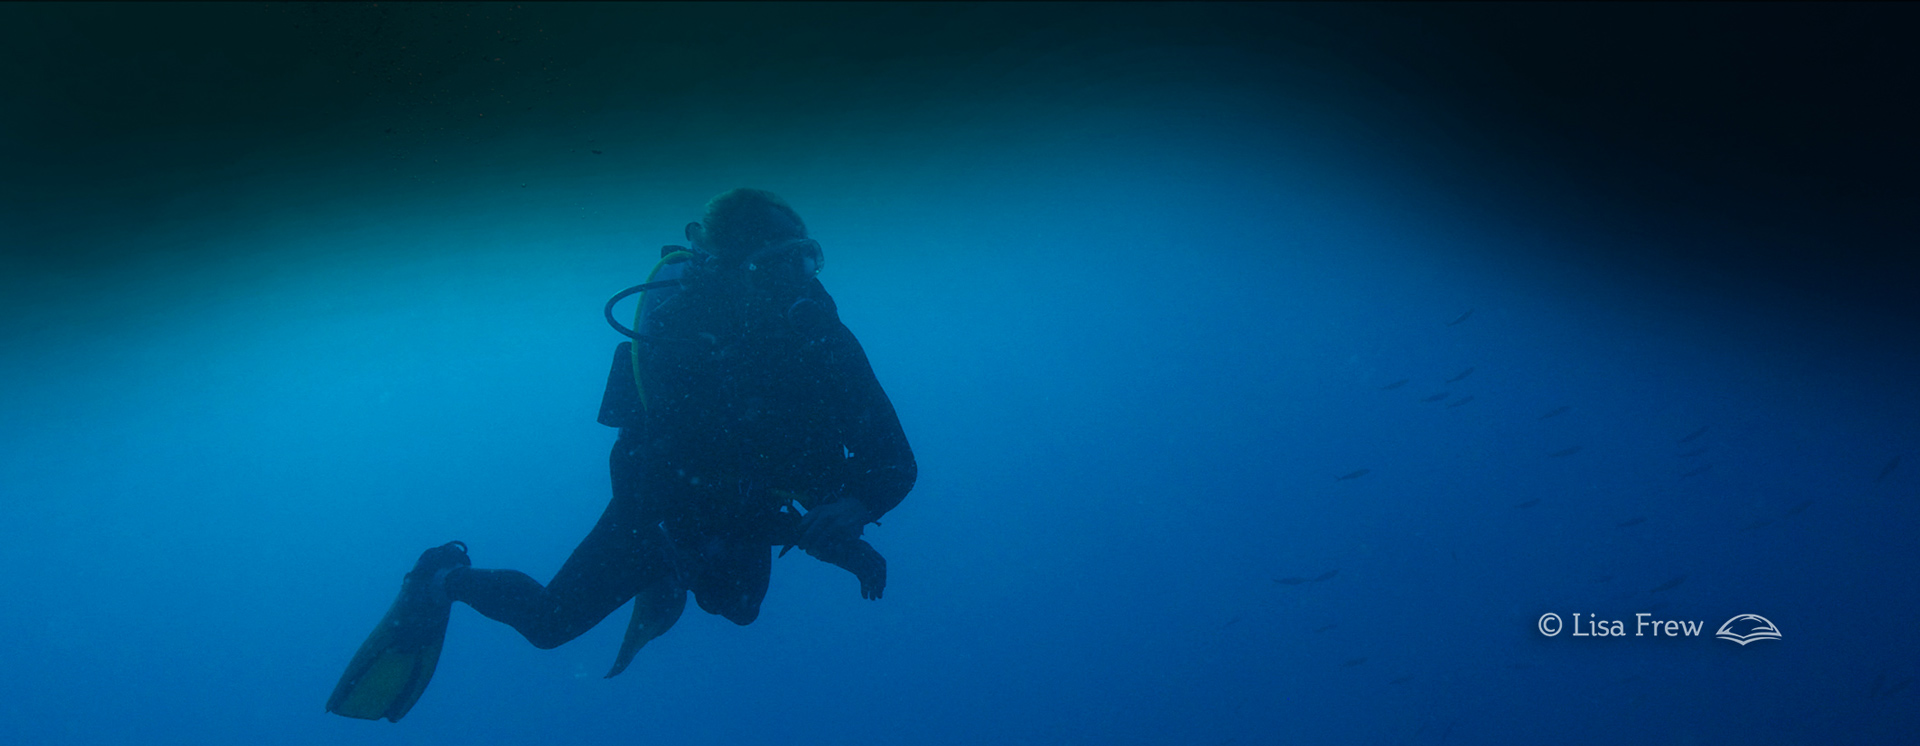 Image of diver on PADI deep diver specialty course